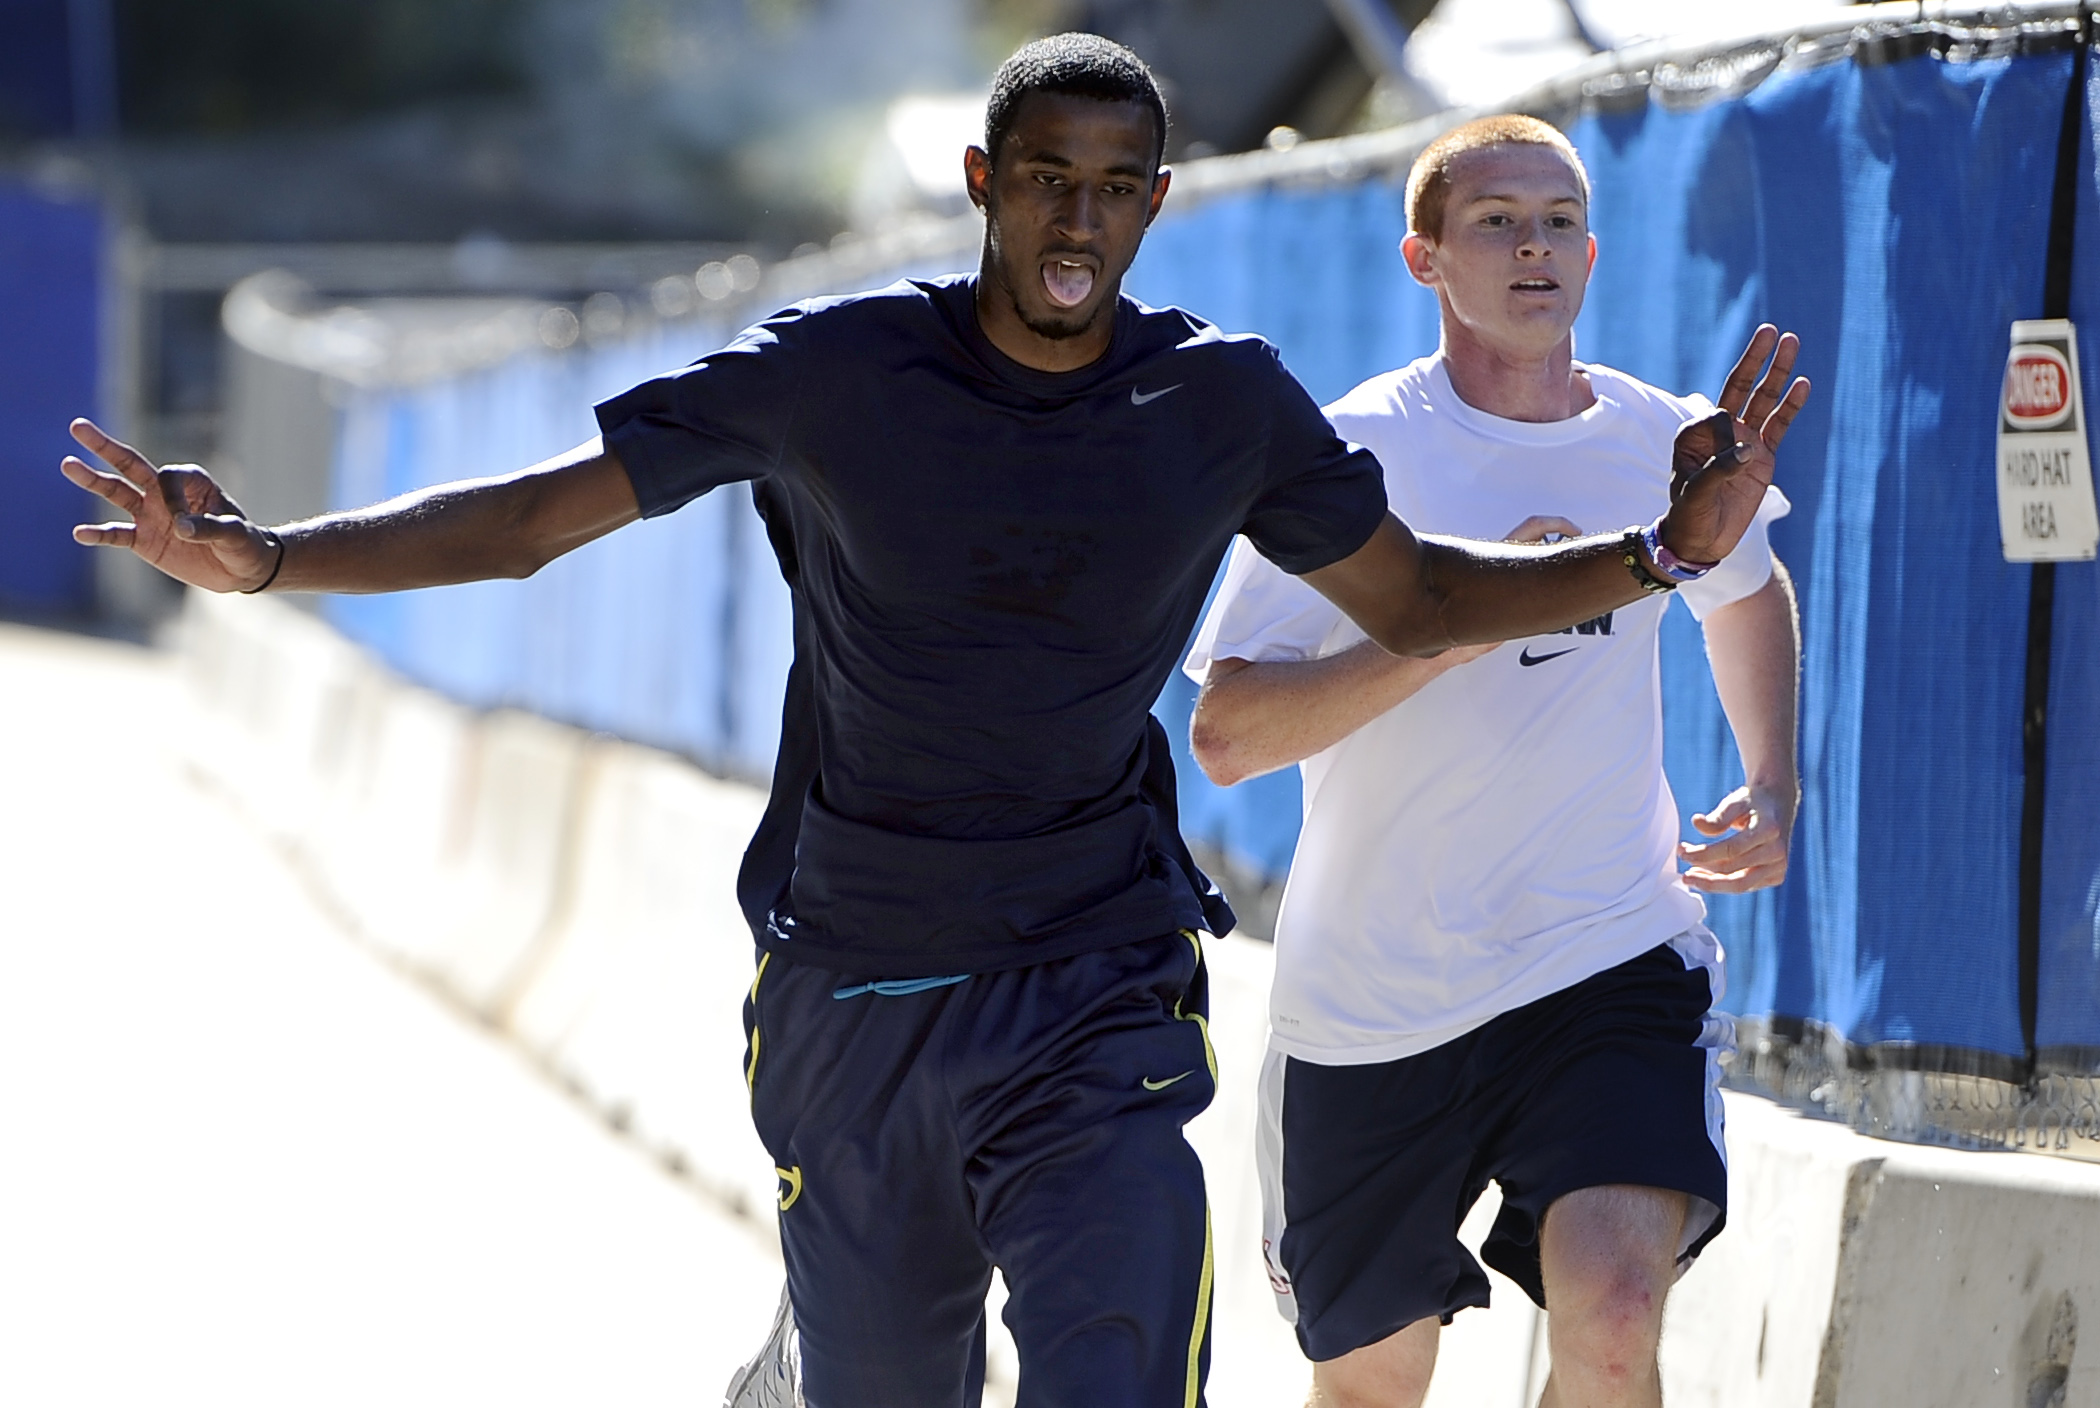 Connecticut basketball player DeAndre Daniels, left, edges out teammate Pat Lenehan to be the first player to finish the 3.4 mile Husky Run, Wednesday, Sept. 25, 2013, in  Storrs, Conn